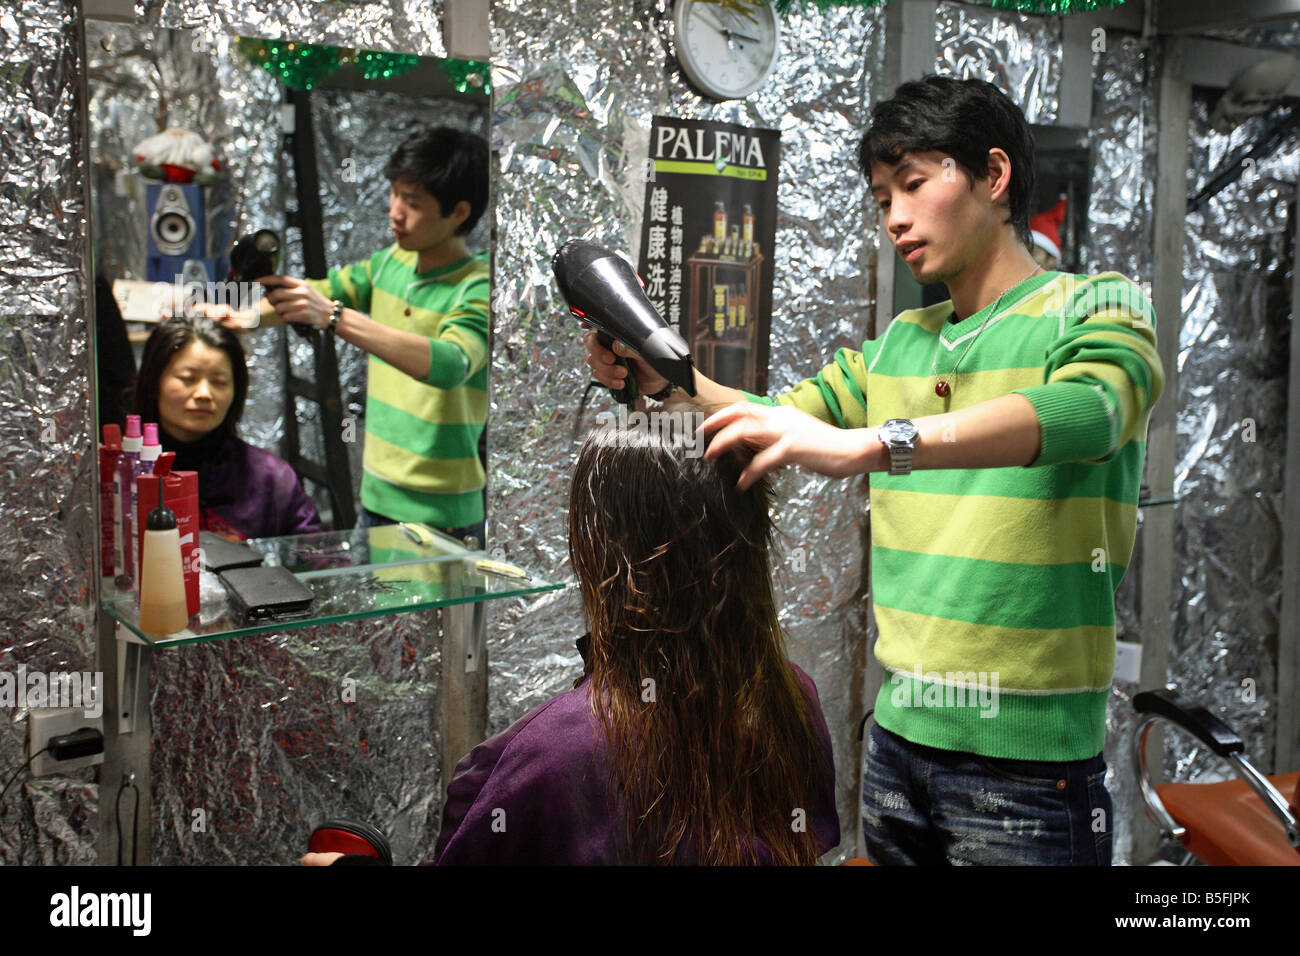 A hairdresser drying hair, Shanghai, China - Stock Image